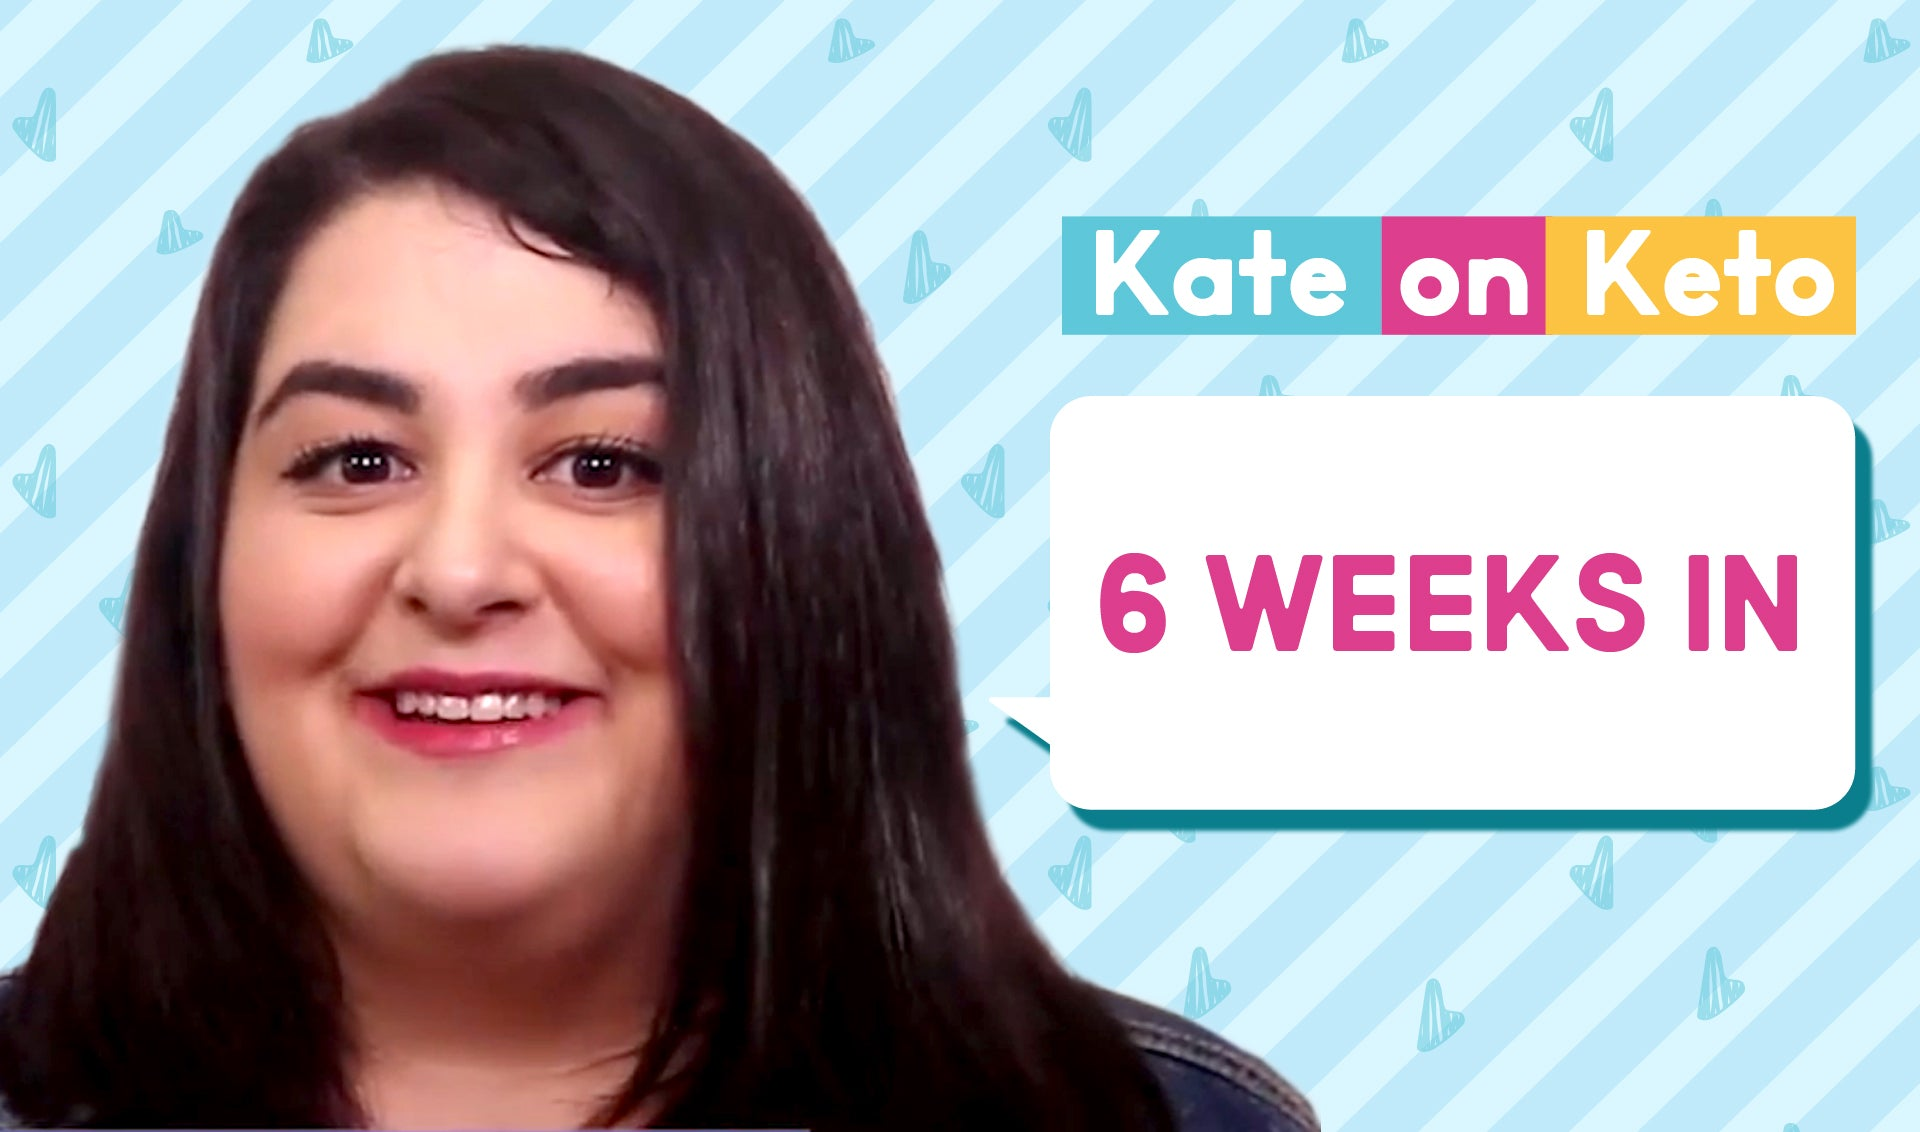 Kate on Keto - 6 Weeks In